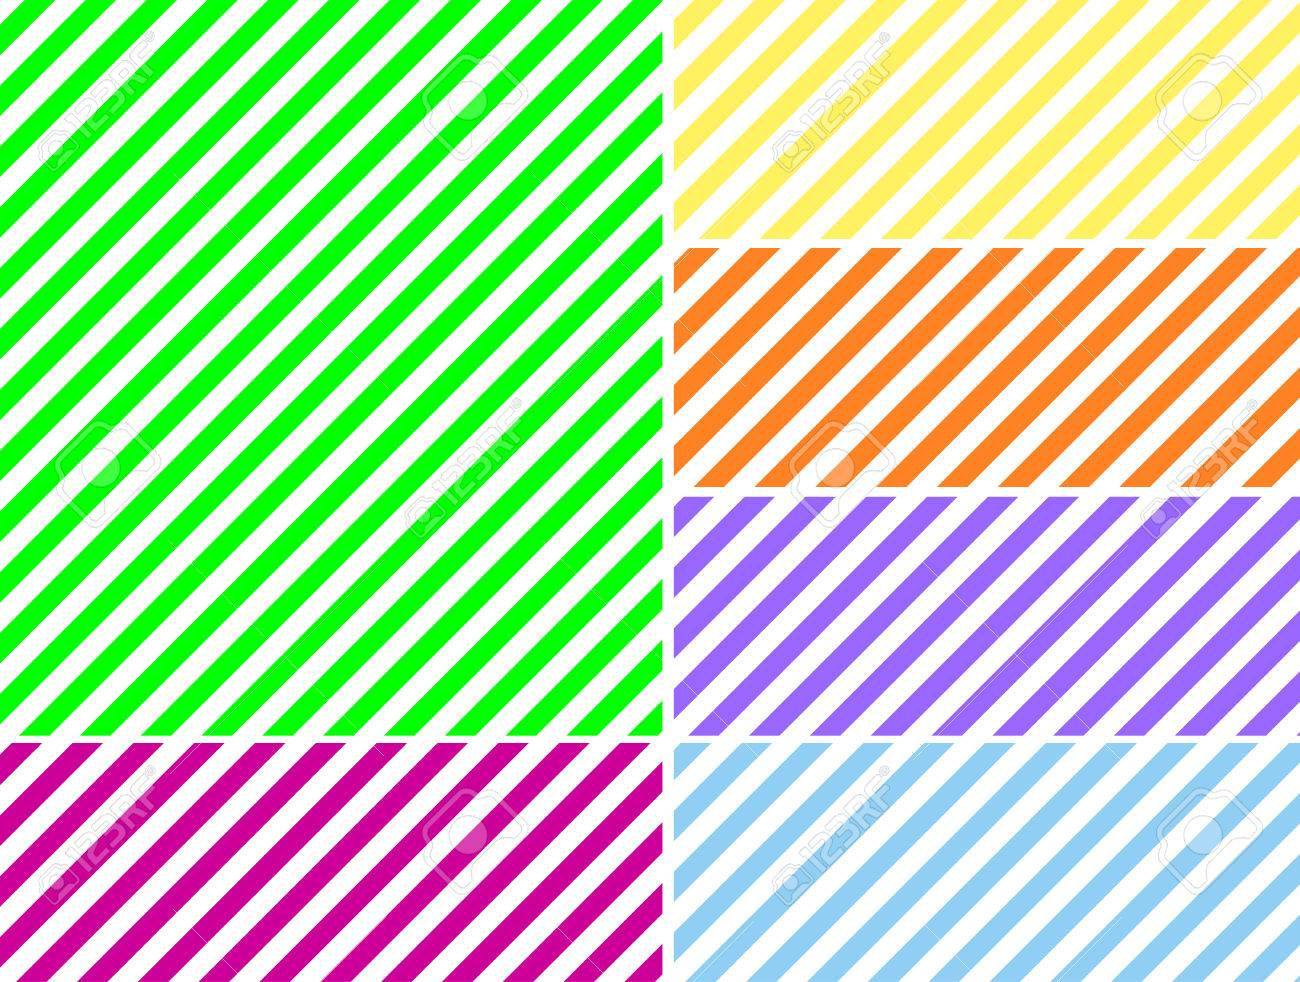 Seamless, continuous, diagonal striped background in six spring colors. - 6882182